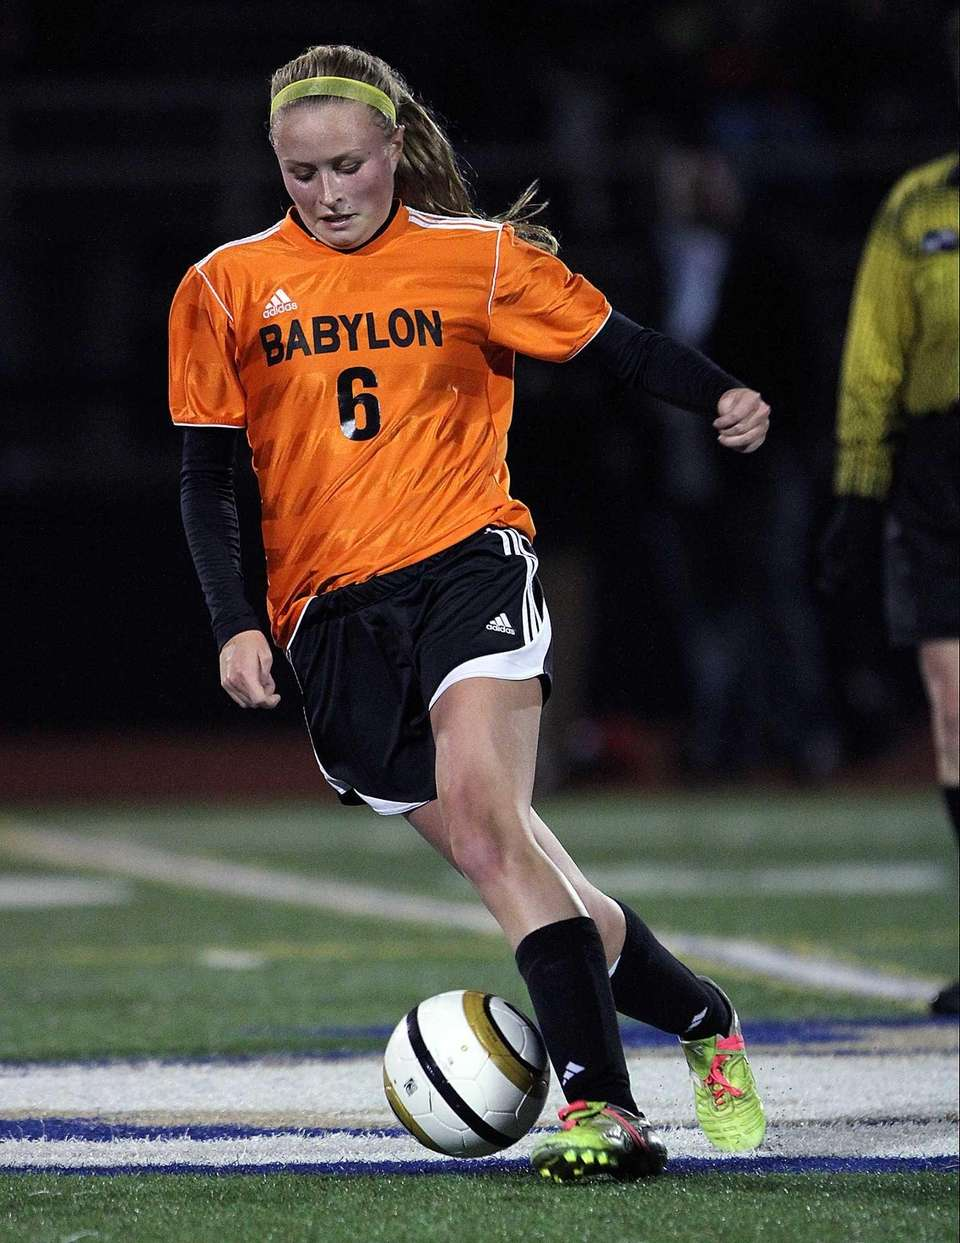 Babylon's Carolanne Murphy dribbles the ball at midfield